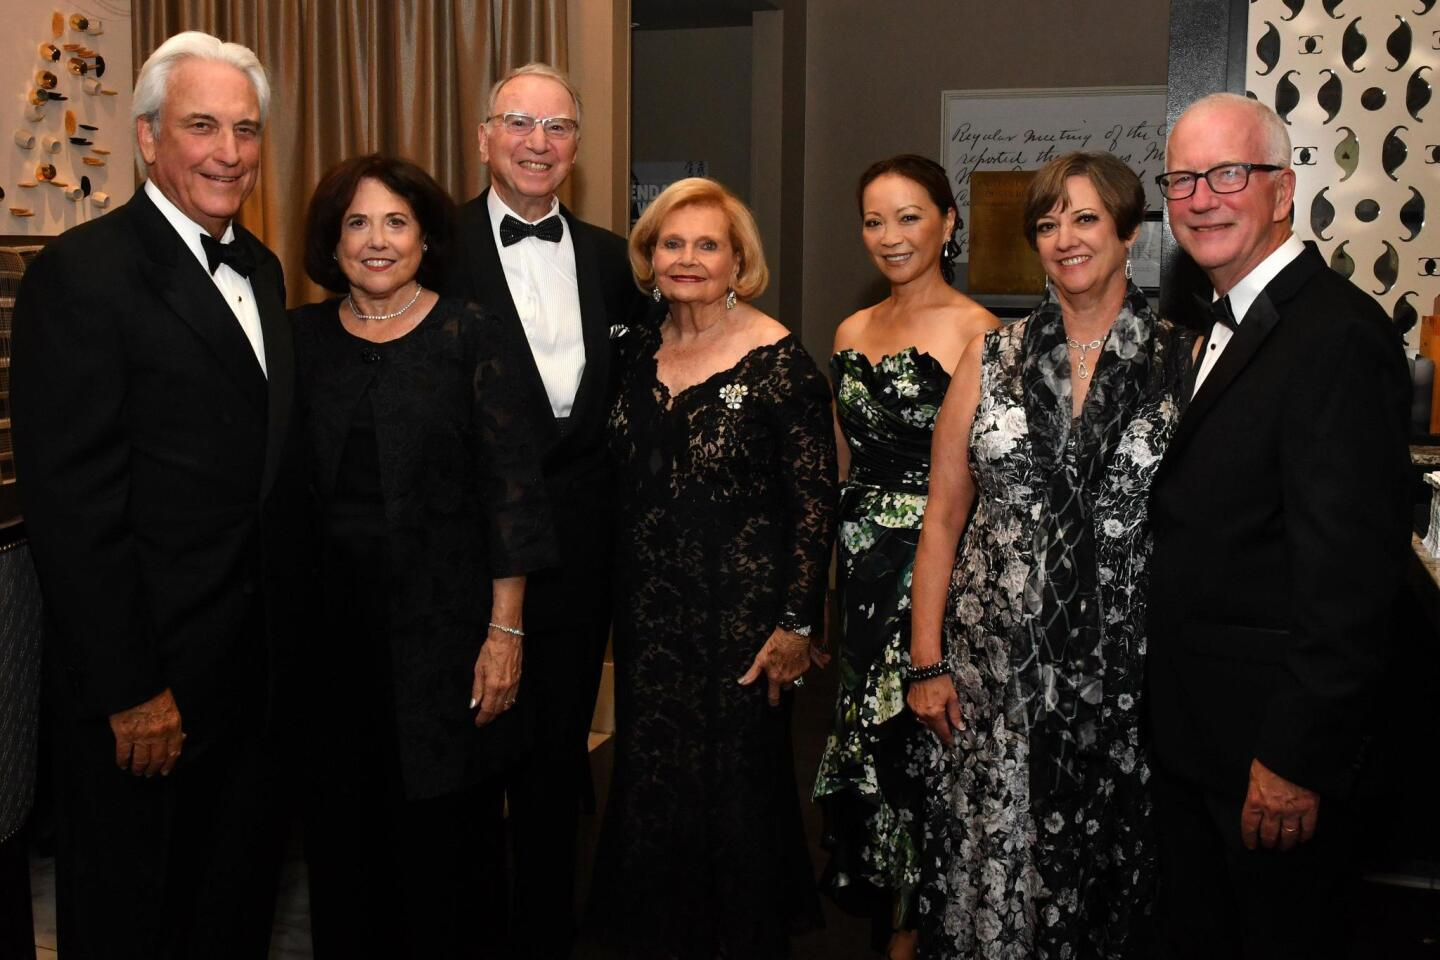 Dr. Warren and Karen Kessler (he's SDS board chair), Irwin and Joan Jacobs, June Shillman (gala chair), Martha and Bill Gilmer (she's SDS CEO)